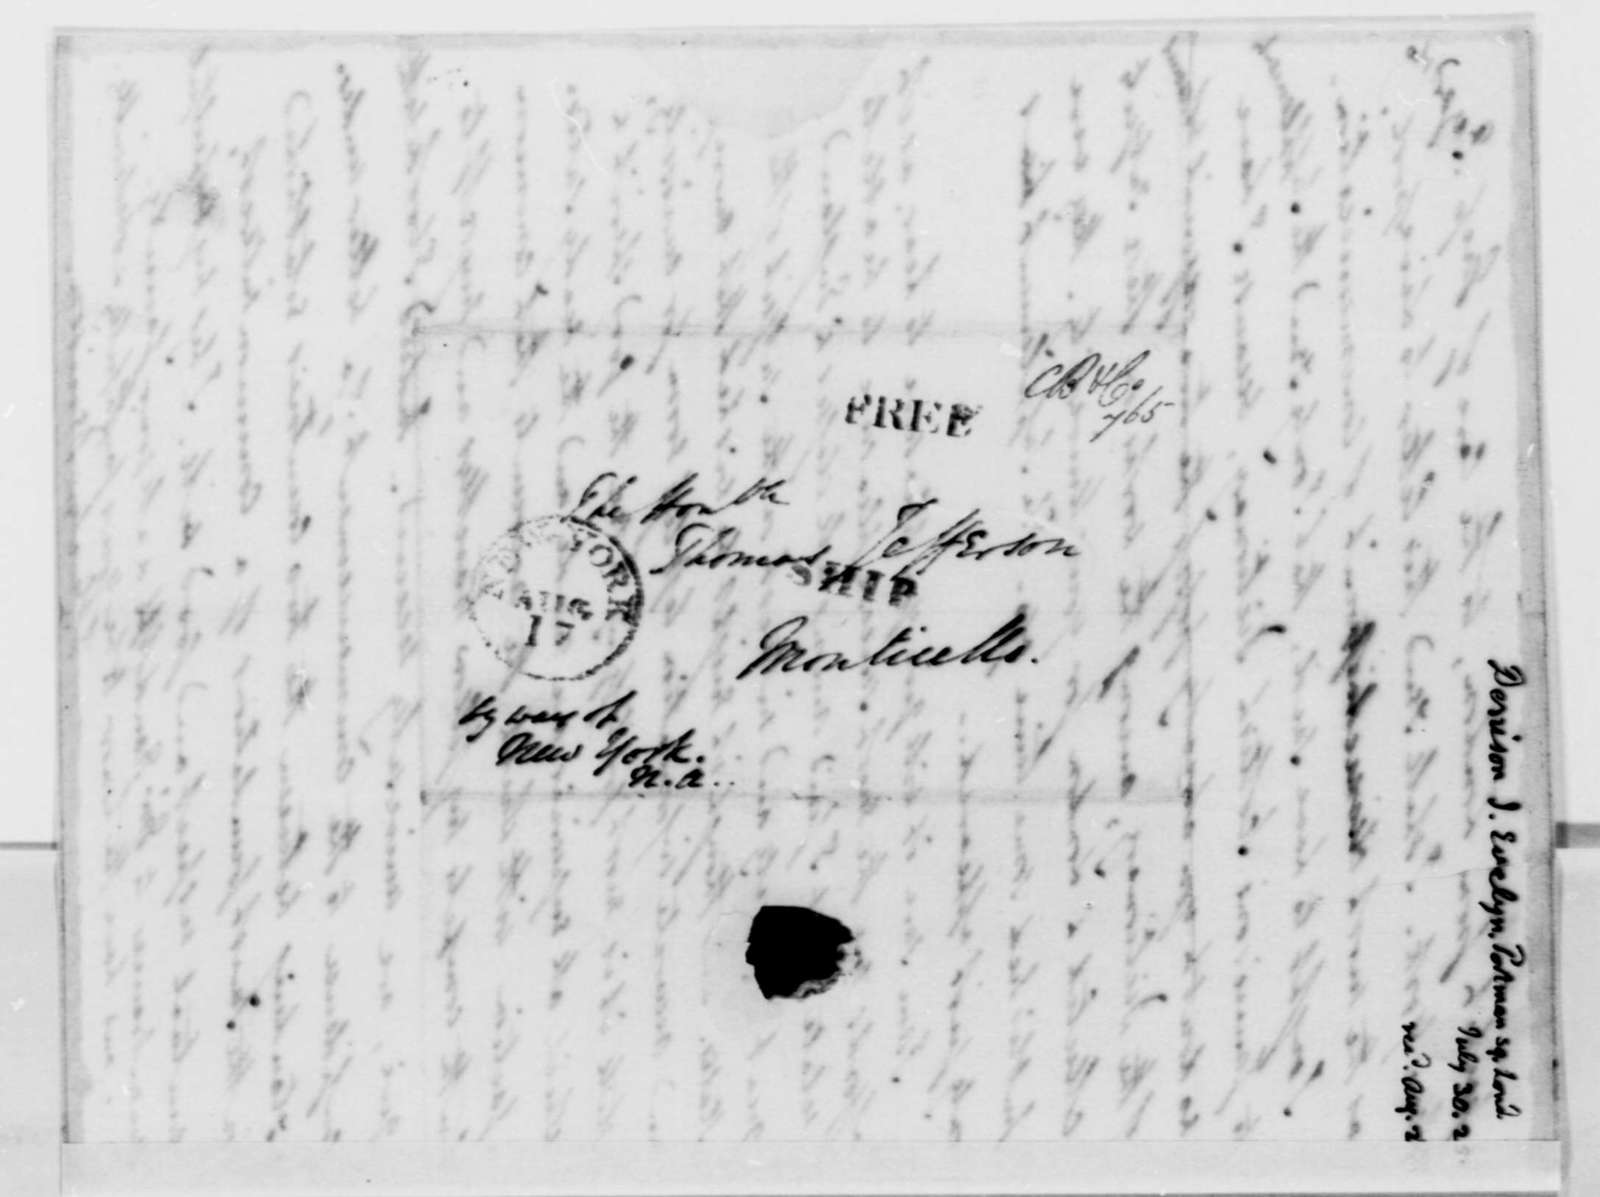 J. Evelyn Denison to Thomas Jefferson, July 30, 1825